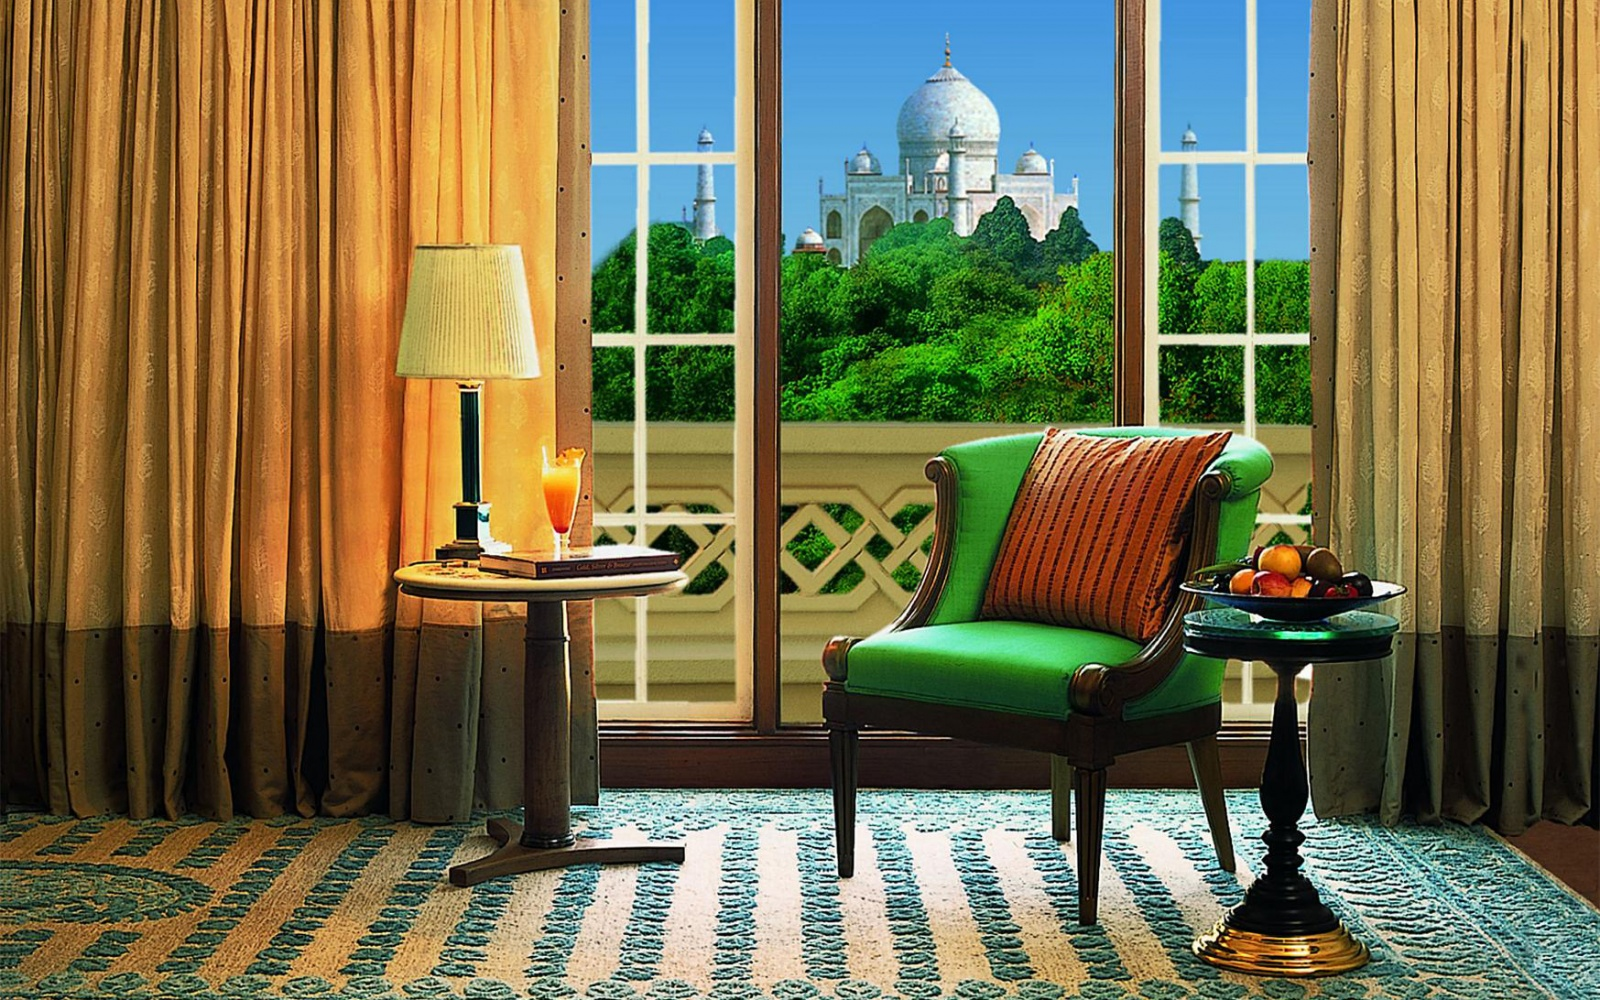 No. 36 Oberoi Amarvilas, Agra, India